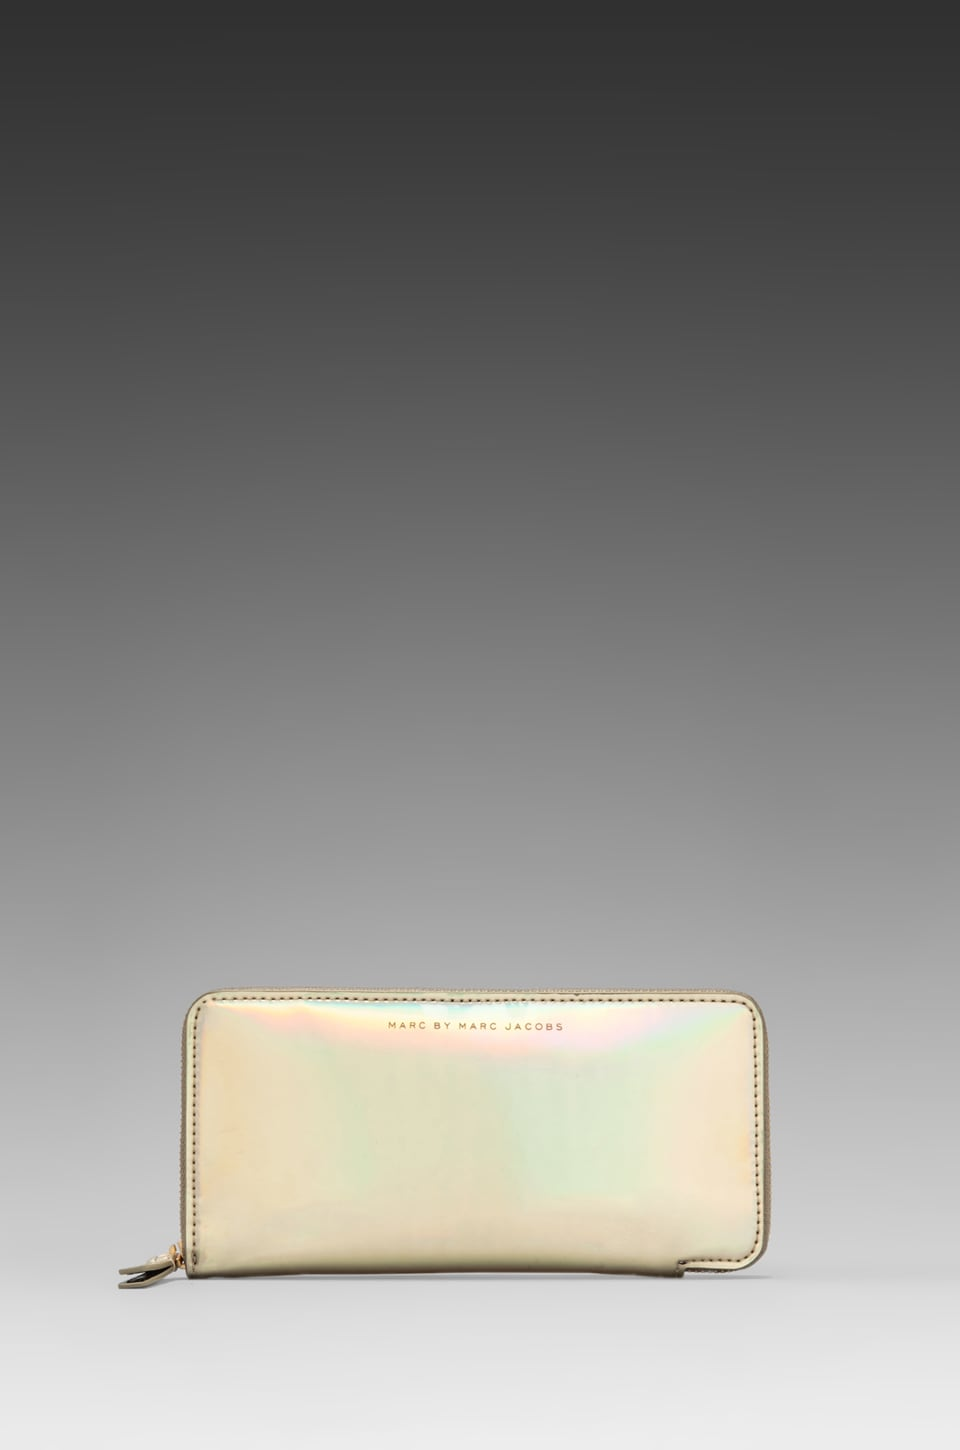 Marc by Marc Jacobs Techno Slim Zippy in Pale Gold Holographic